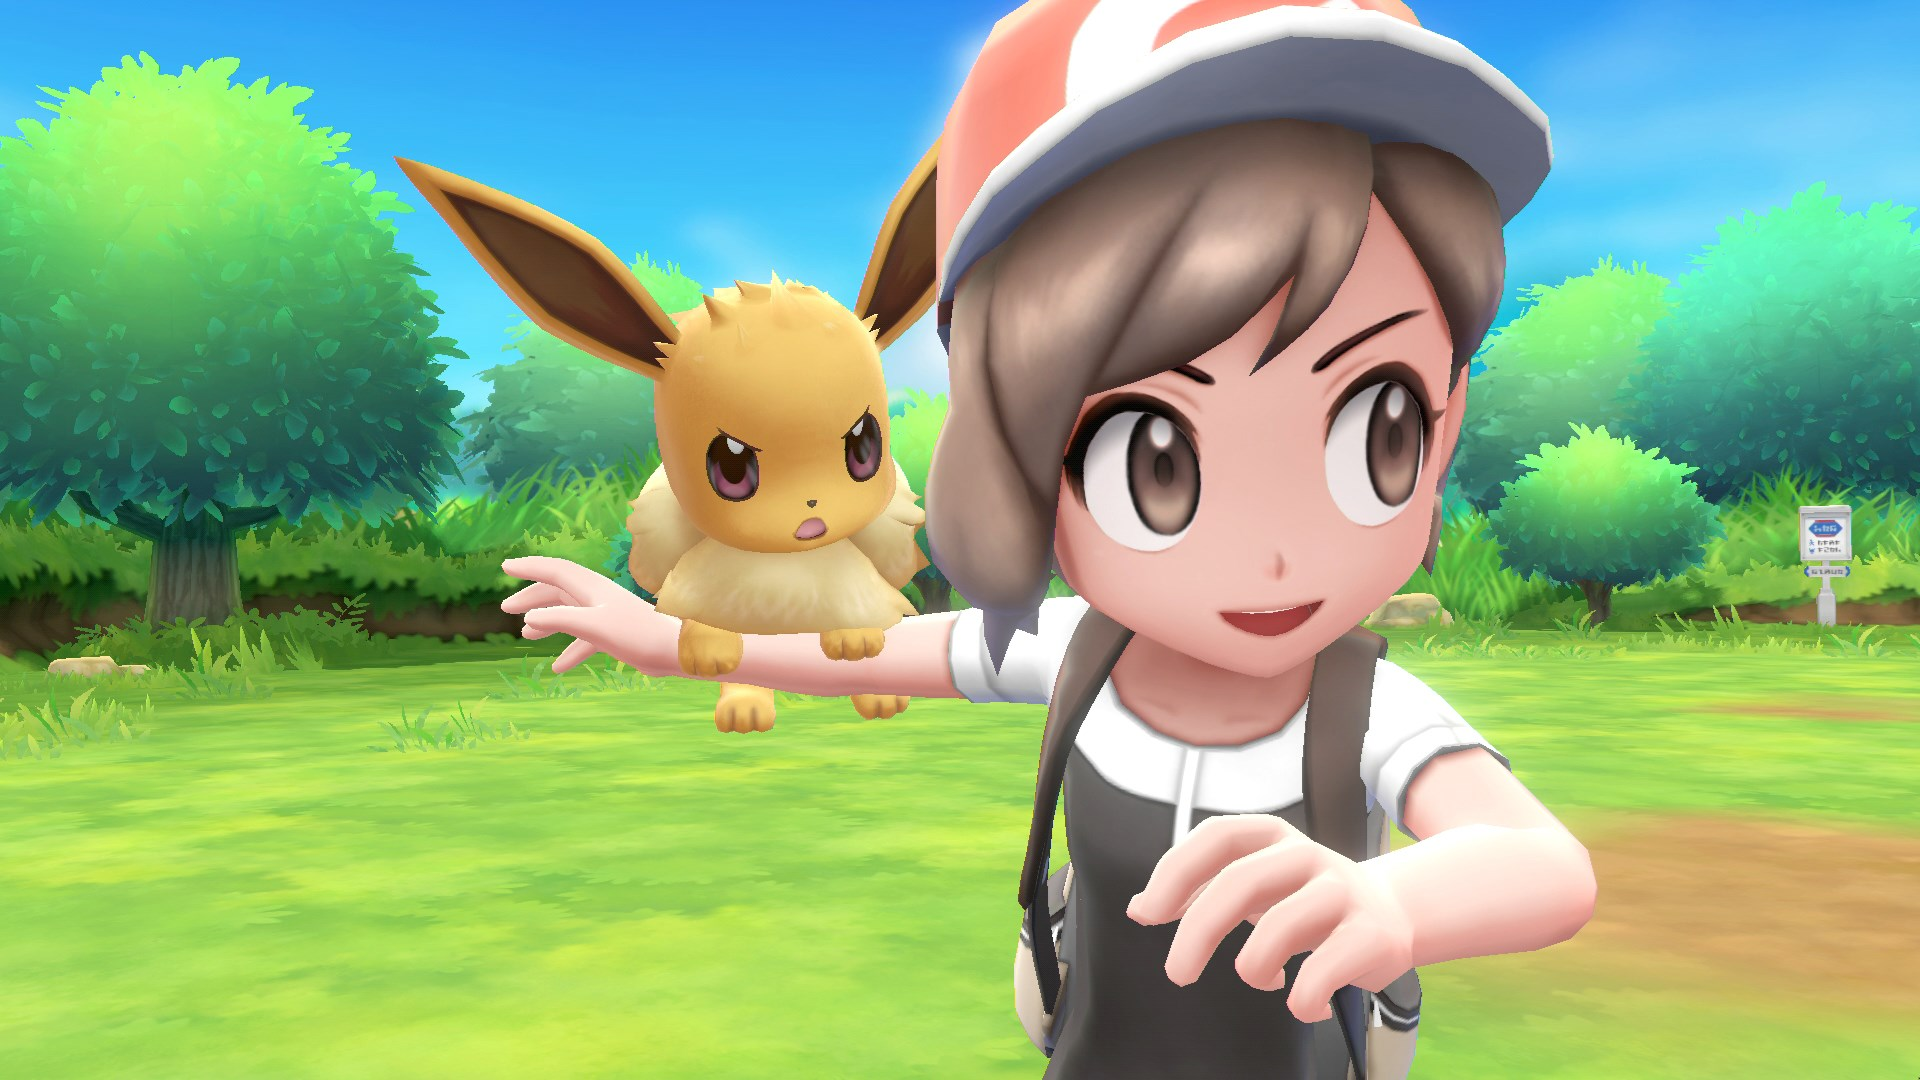 Preorder and save on the new Pokemon games everyone's talking about for Nintendo Switch